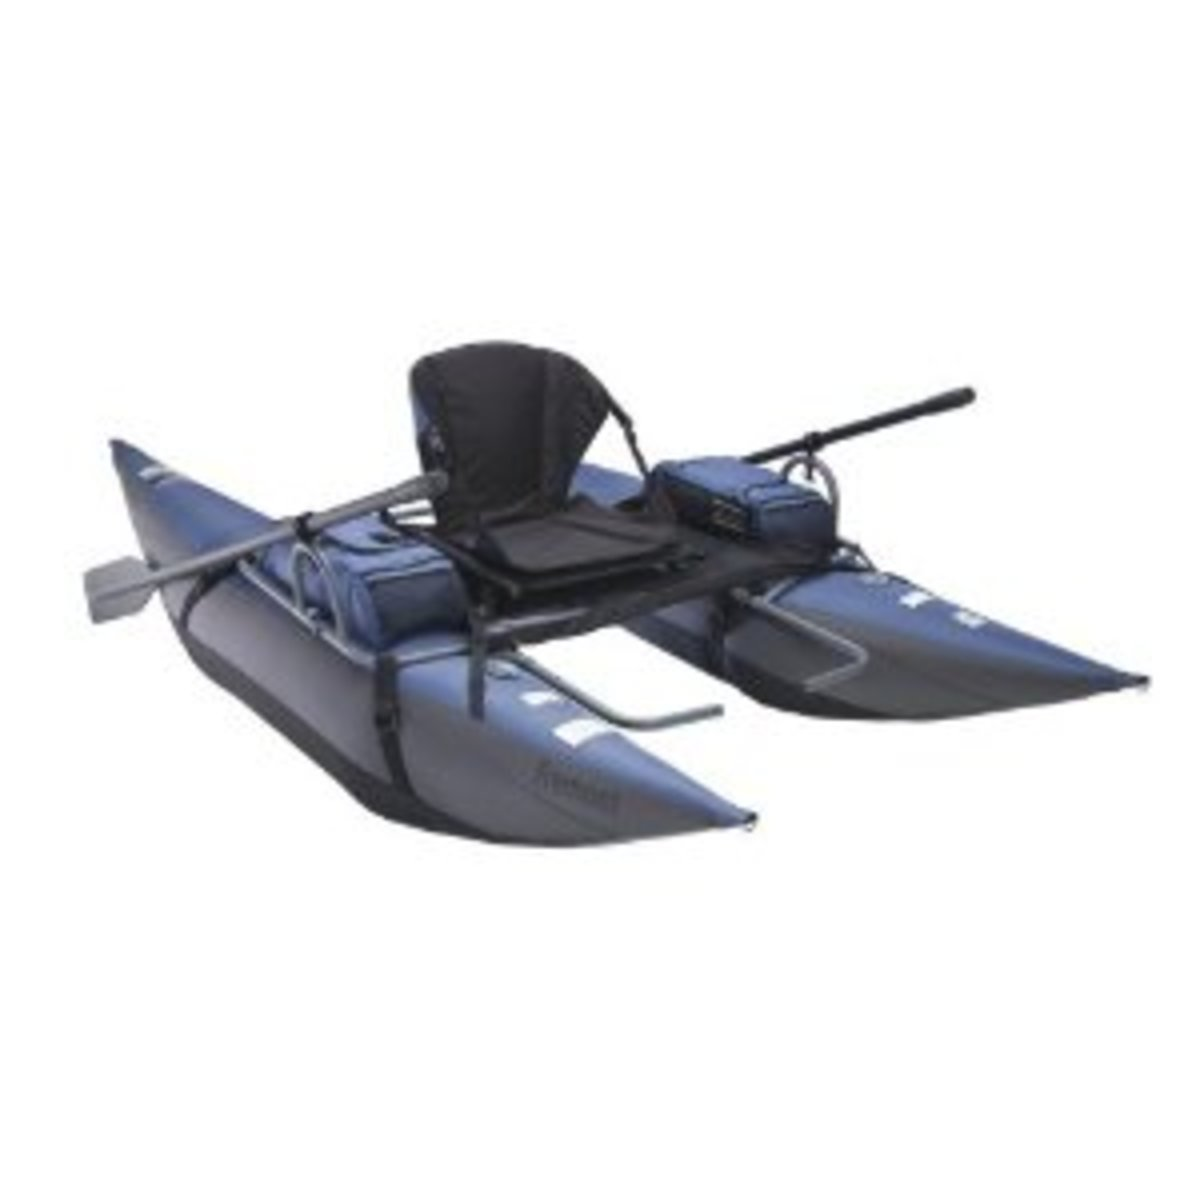 Classic Accessories Fremont Packable Pontoon Boat (Slate/Charcoal)